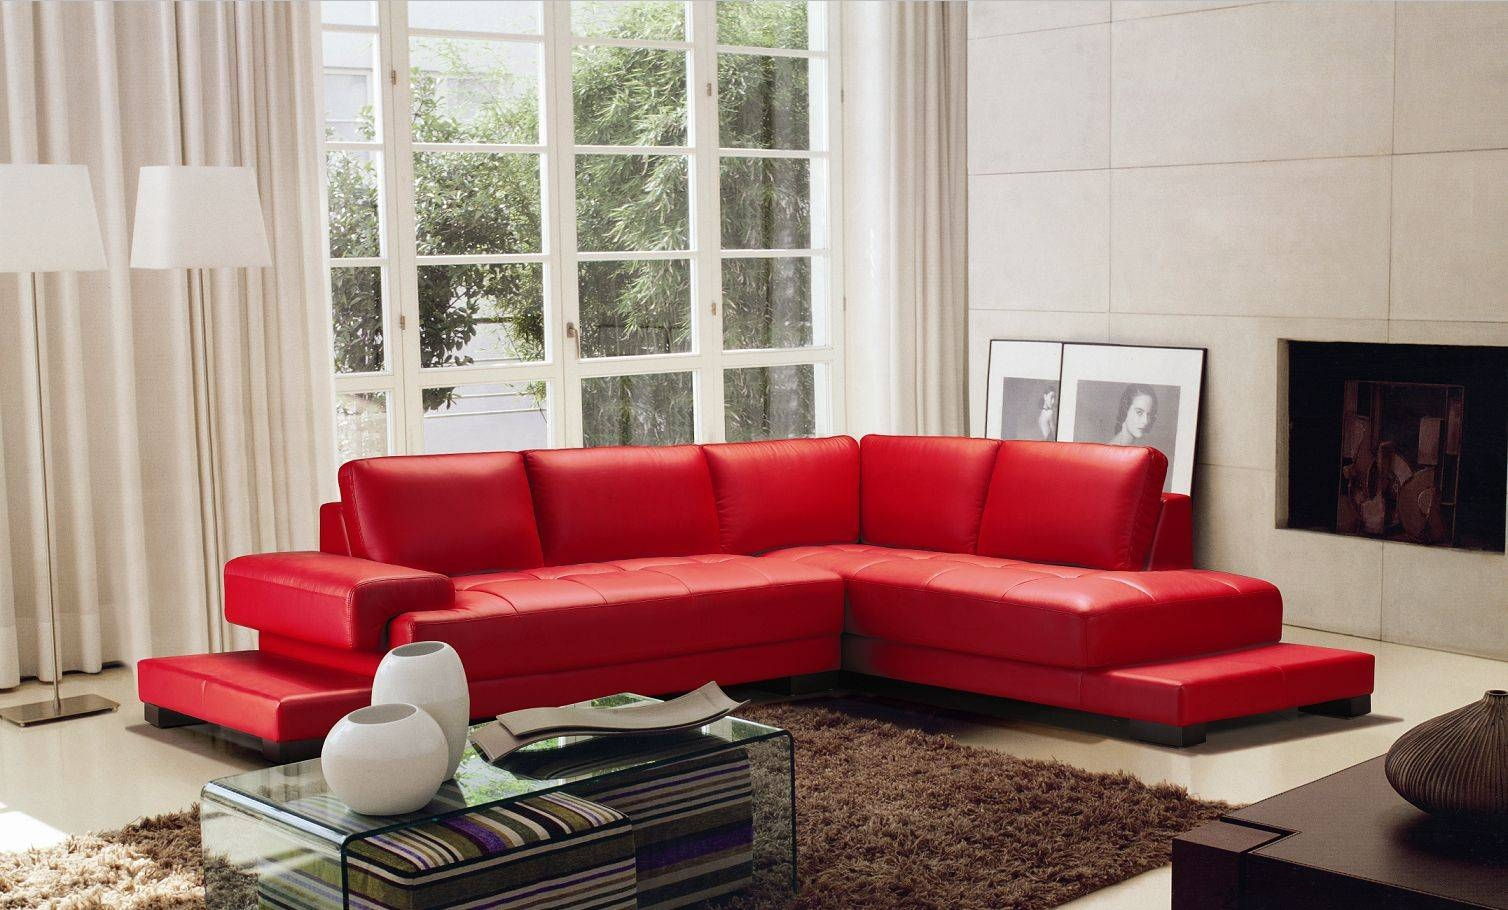 15 Photos Black And Red Sofa Sets